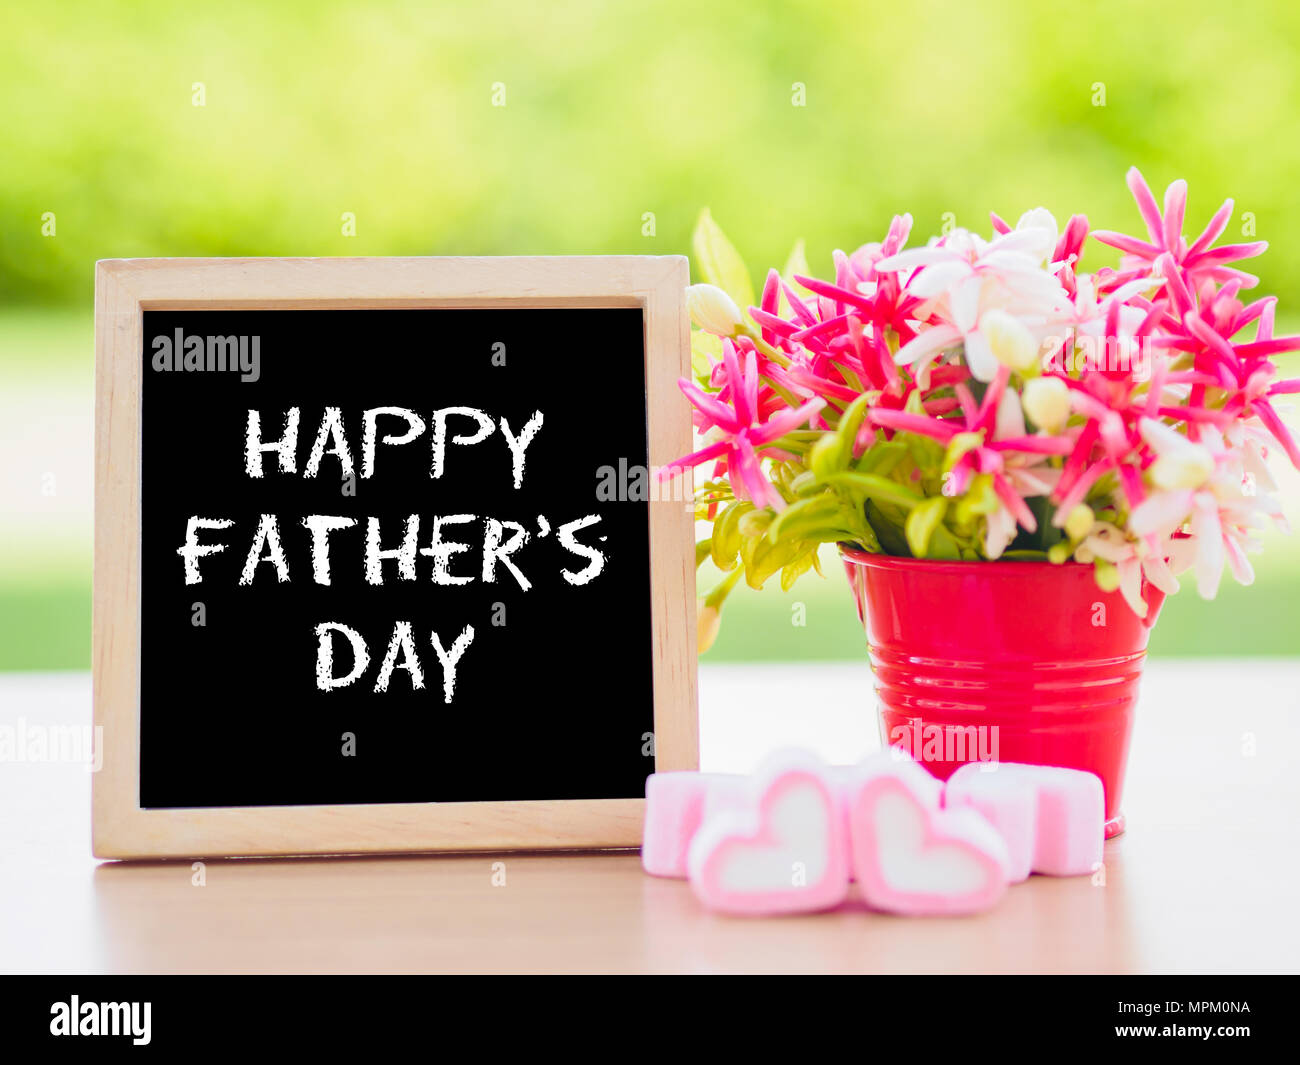 2019 year look- Flower day Fathers pictures